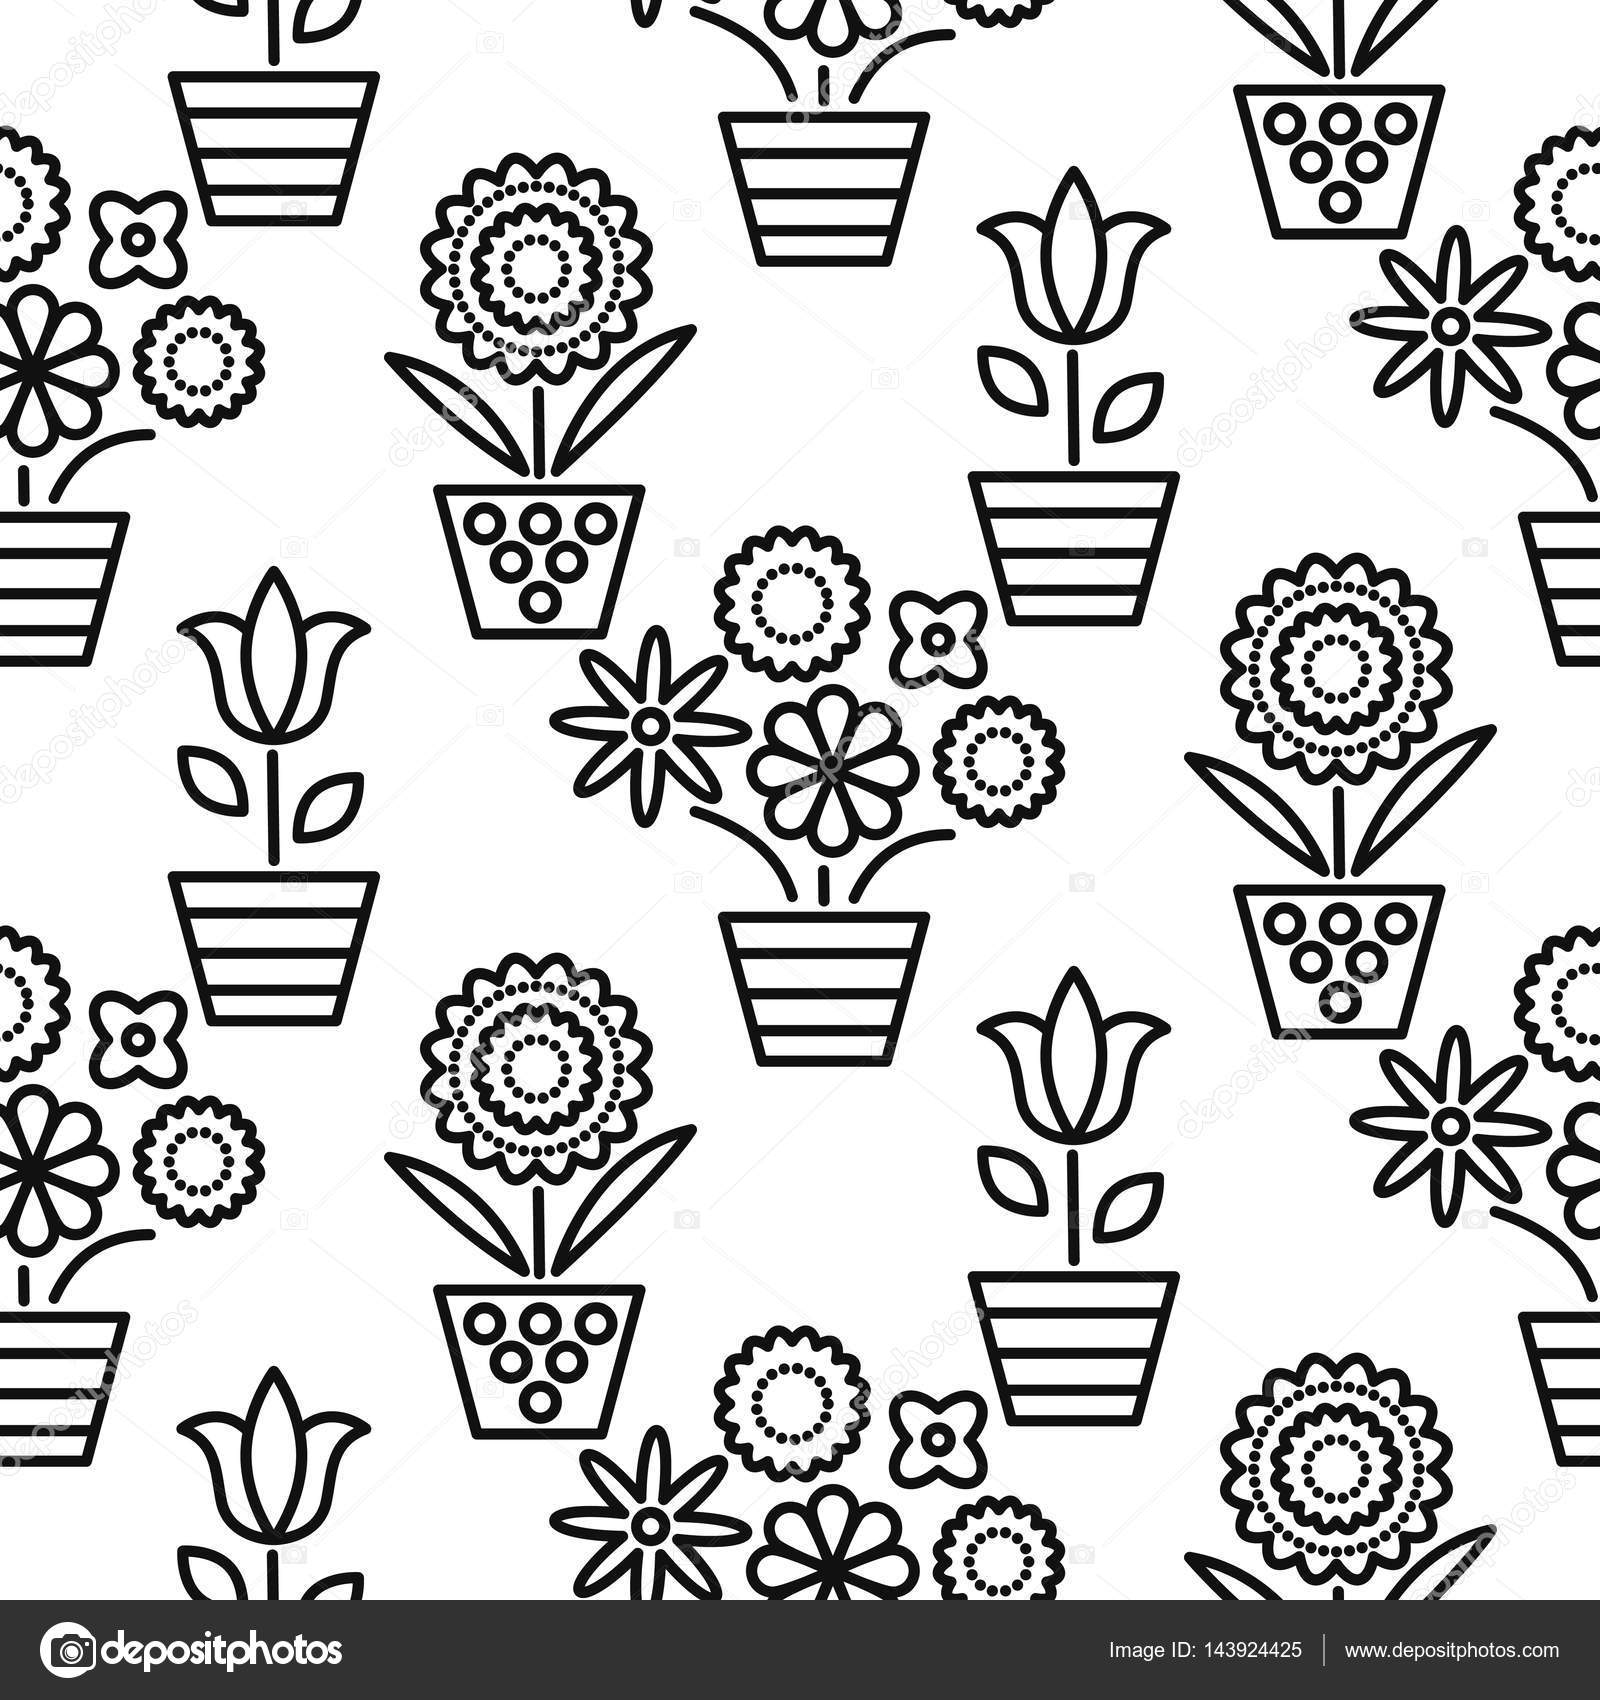 Black And White Line Flower Pots Seamless Vector Stock Vector